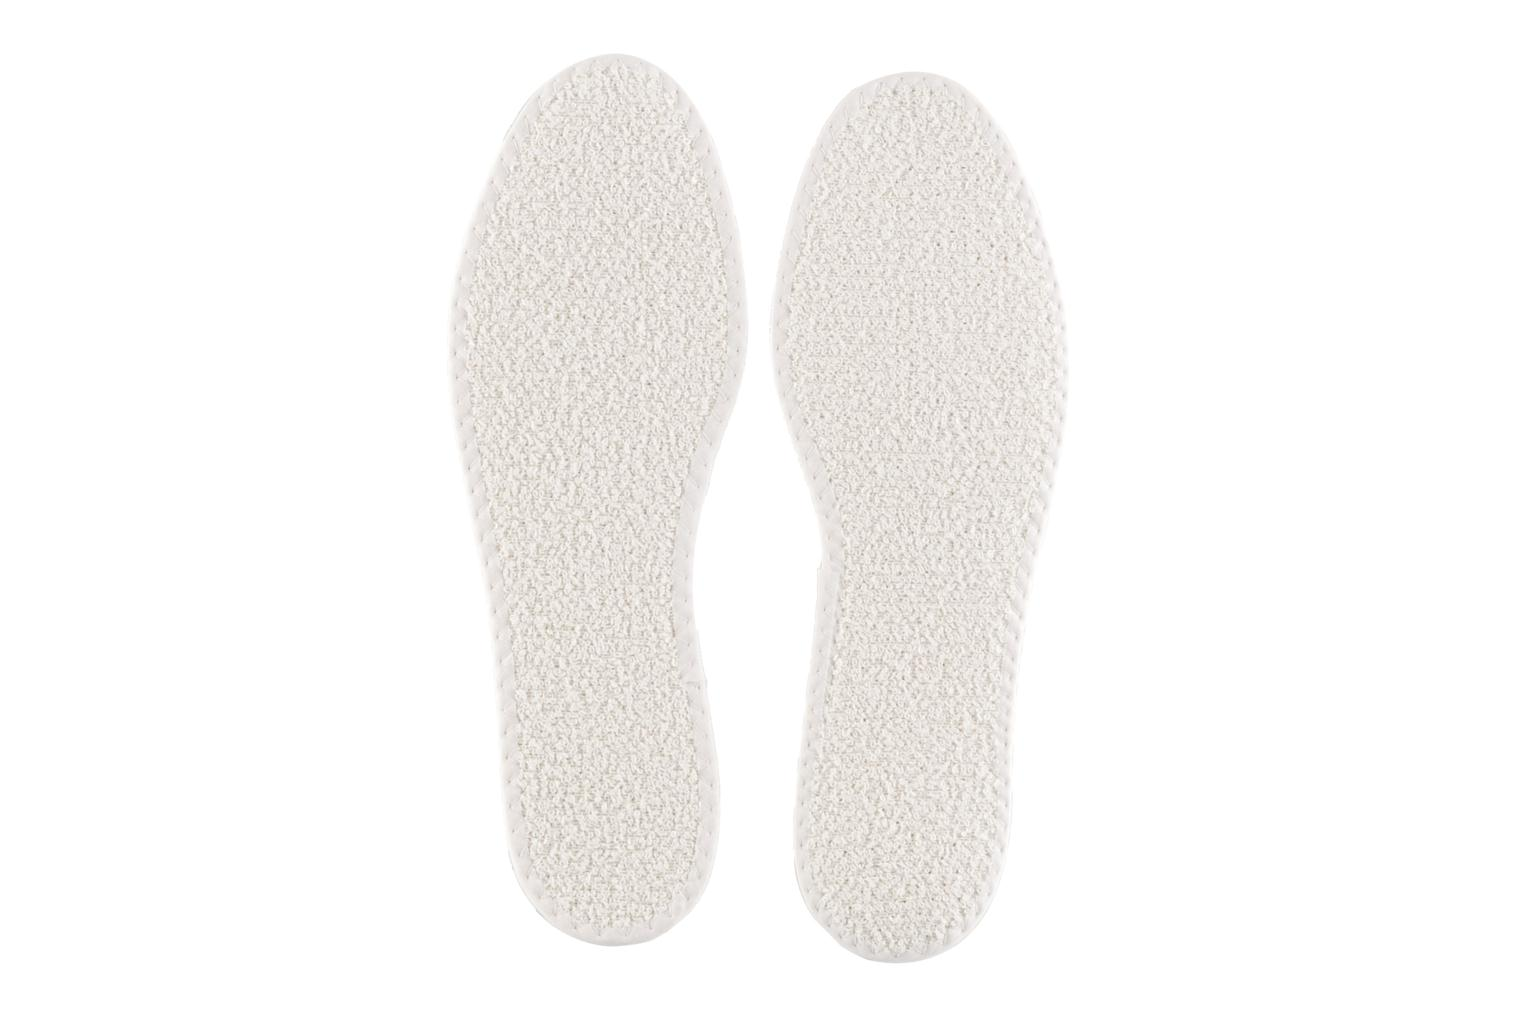 Men's Famaco Tropicale cotton insole Blanche